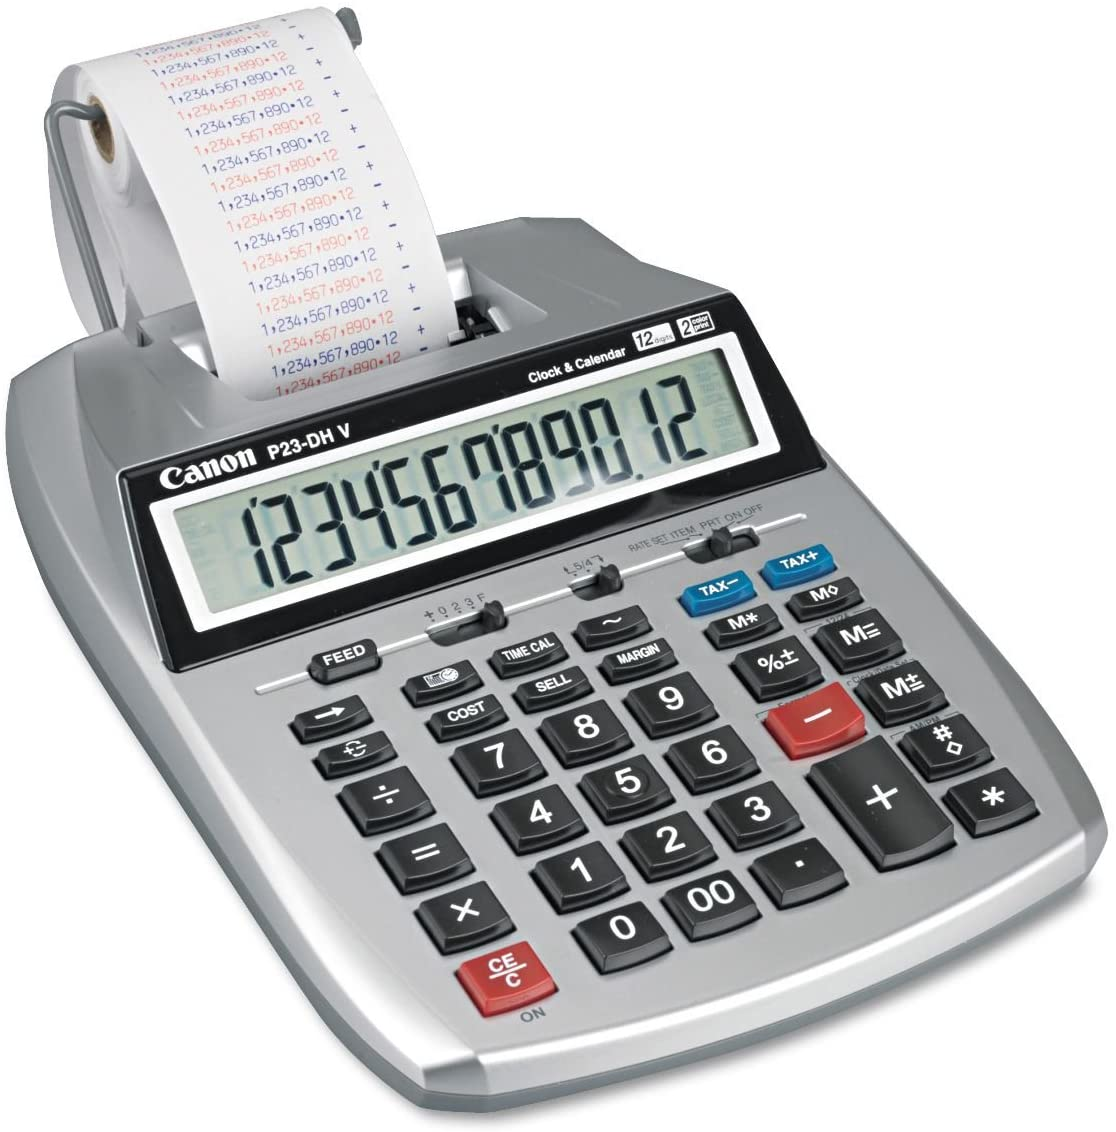 Canon P23DHV P23-DHV 12-Digit Printing Calculator, Purple/Red Print, 2.3 Lines/Sec